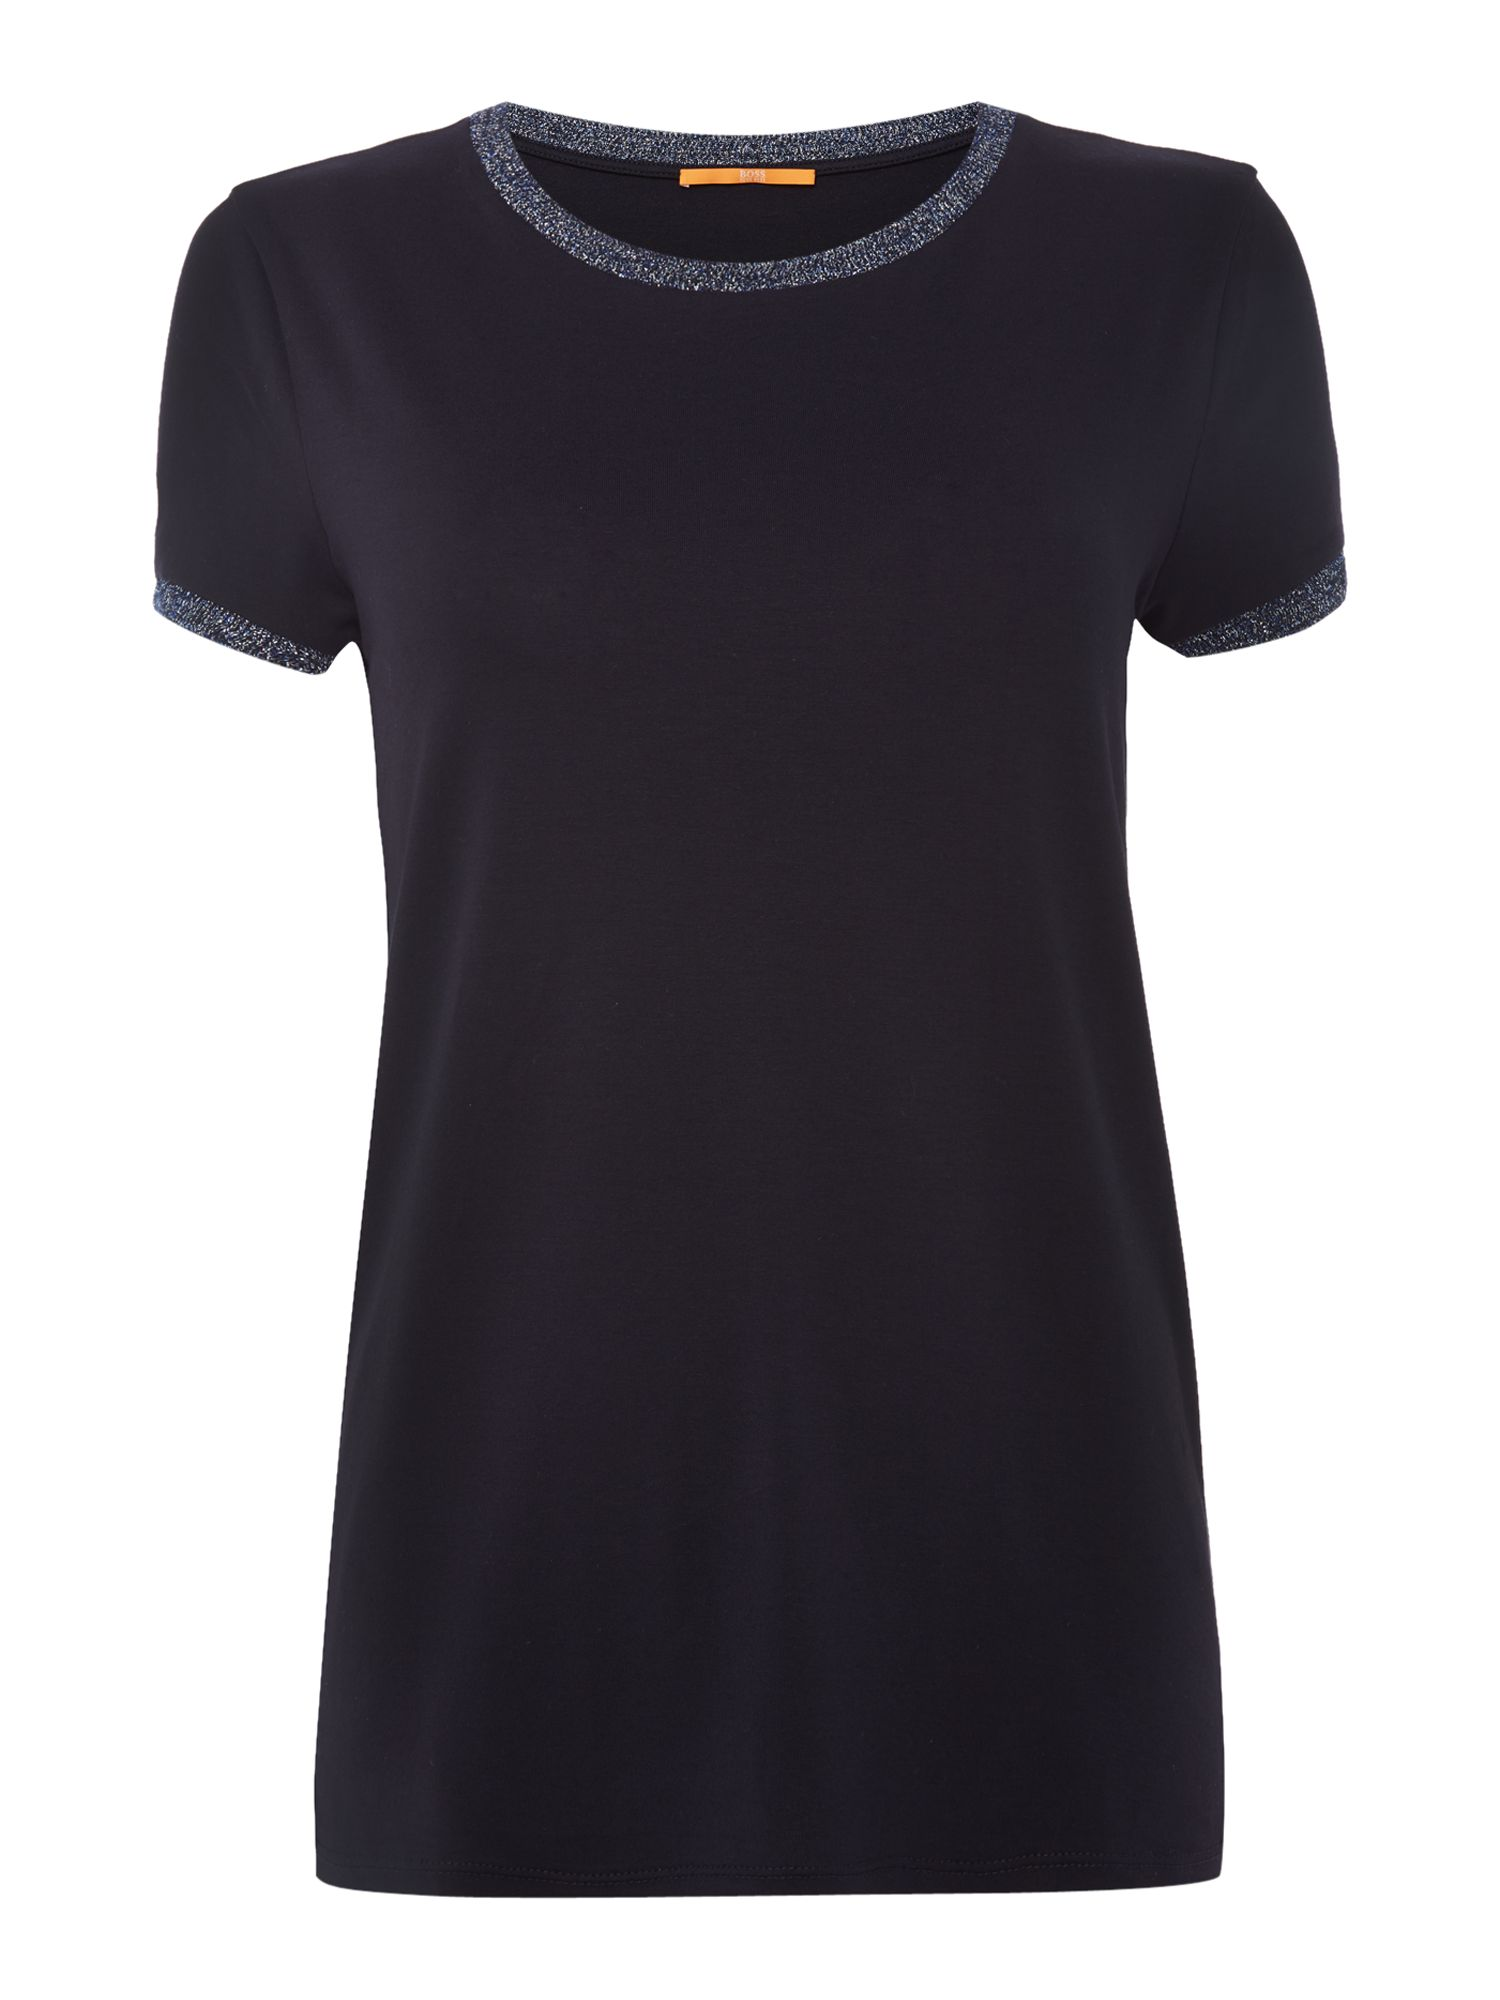 Hugo Boss Tacrew Crew Neck Top in Dark Blue, Dark Blue